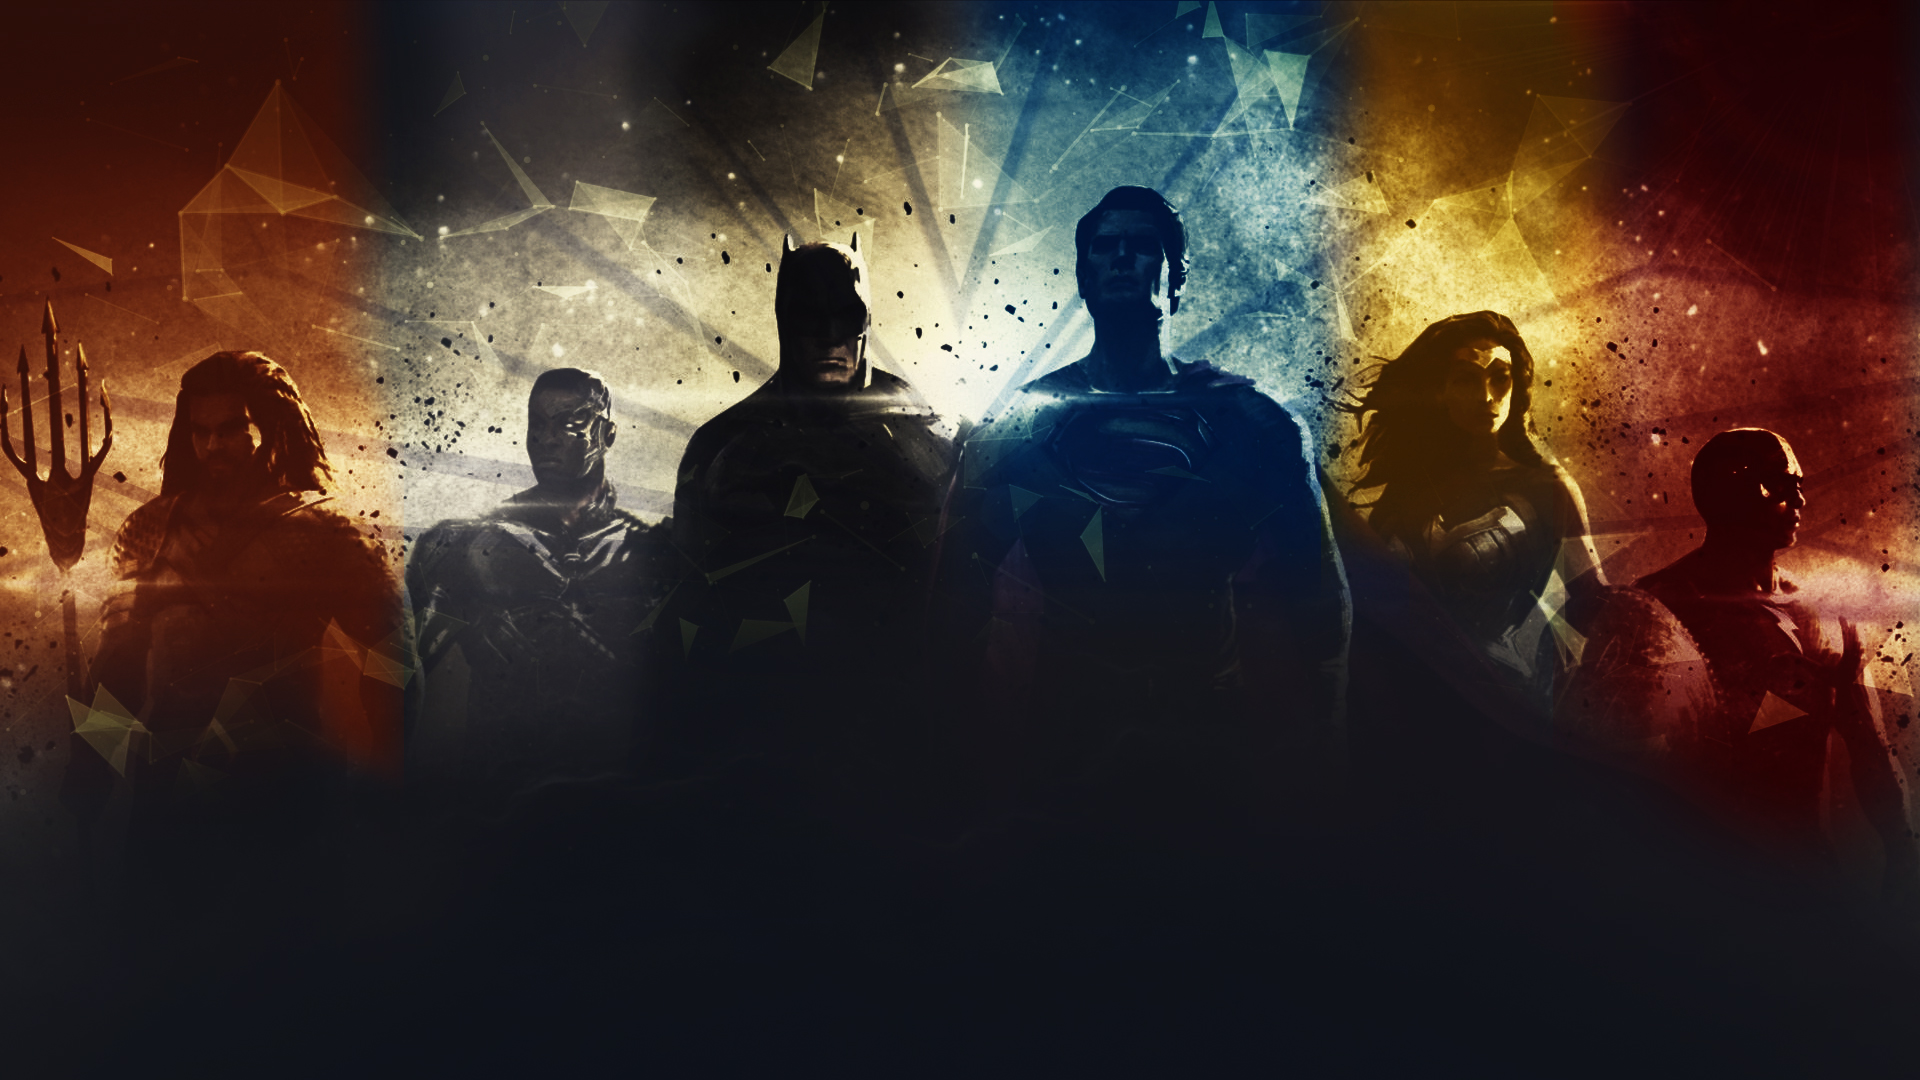 The Dawn Of Justice League Full HD Wallpaper And Background